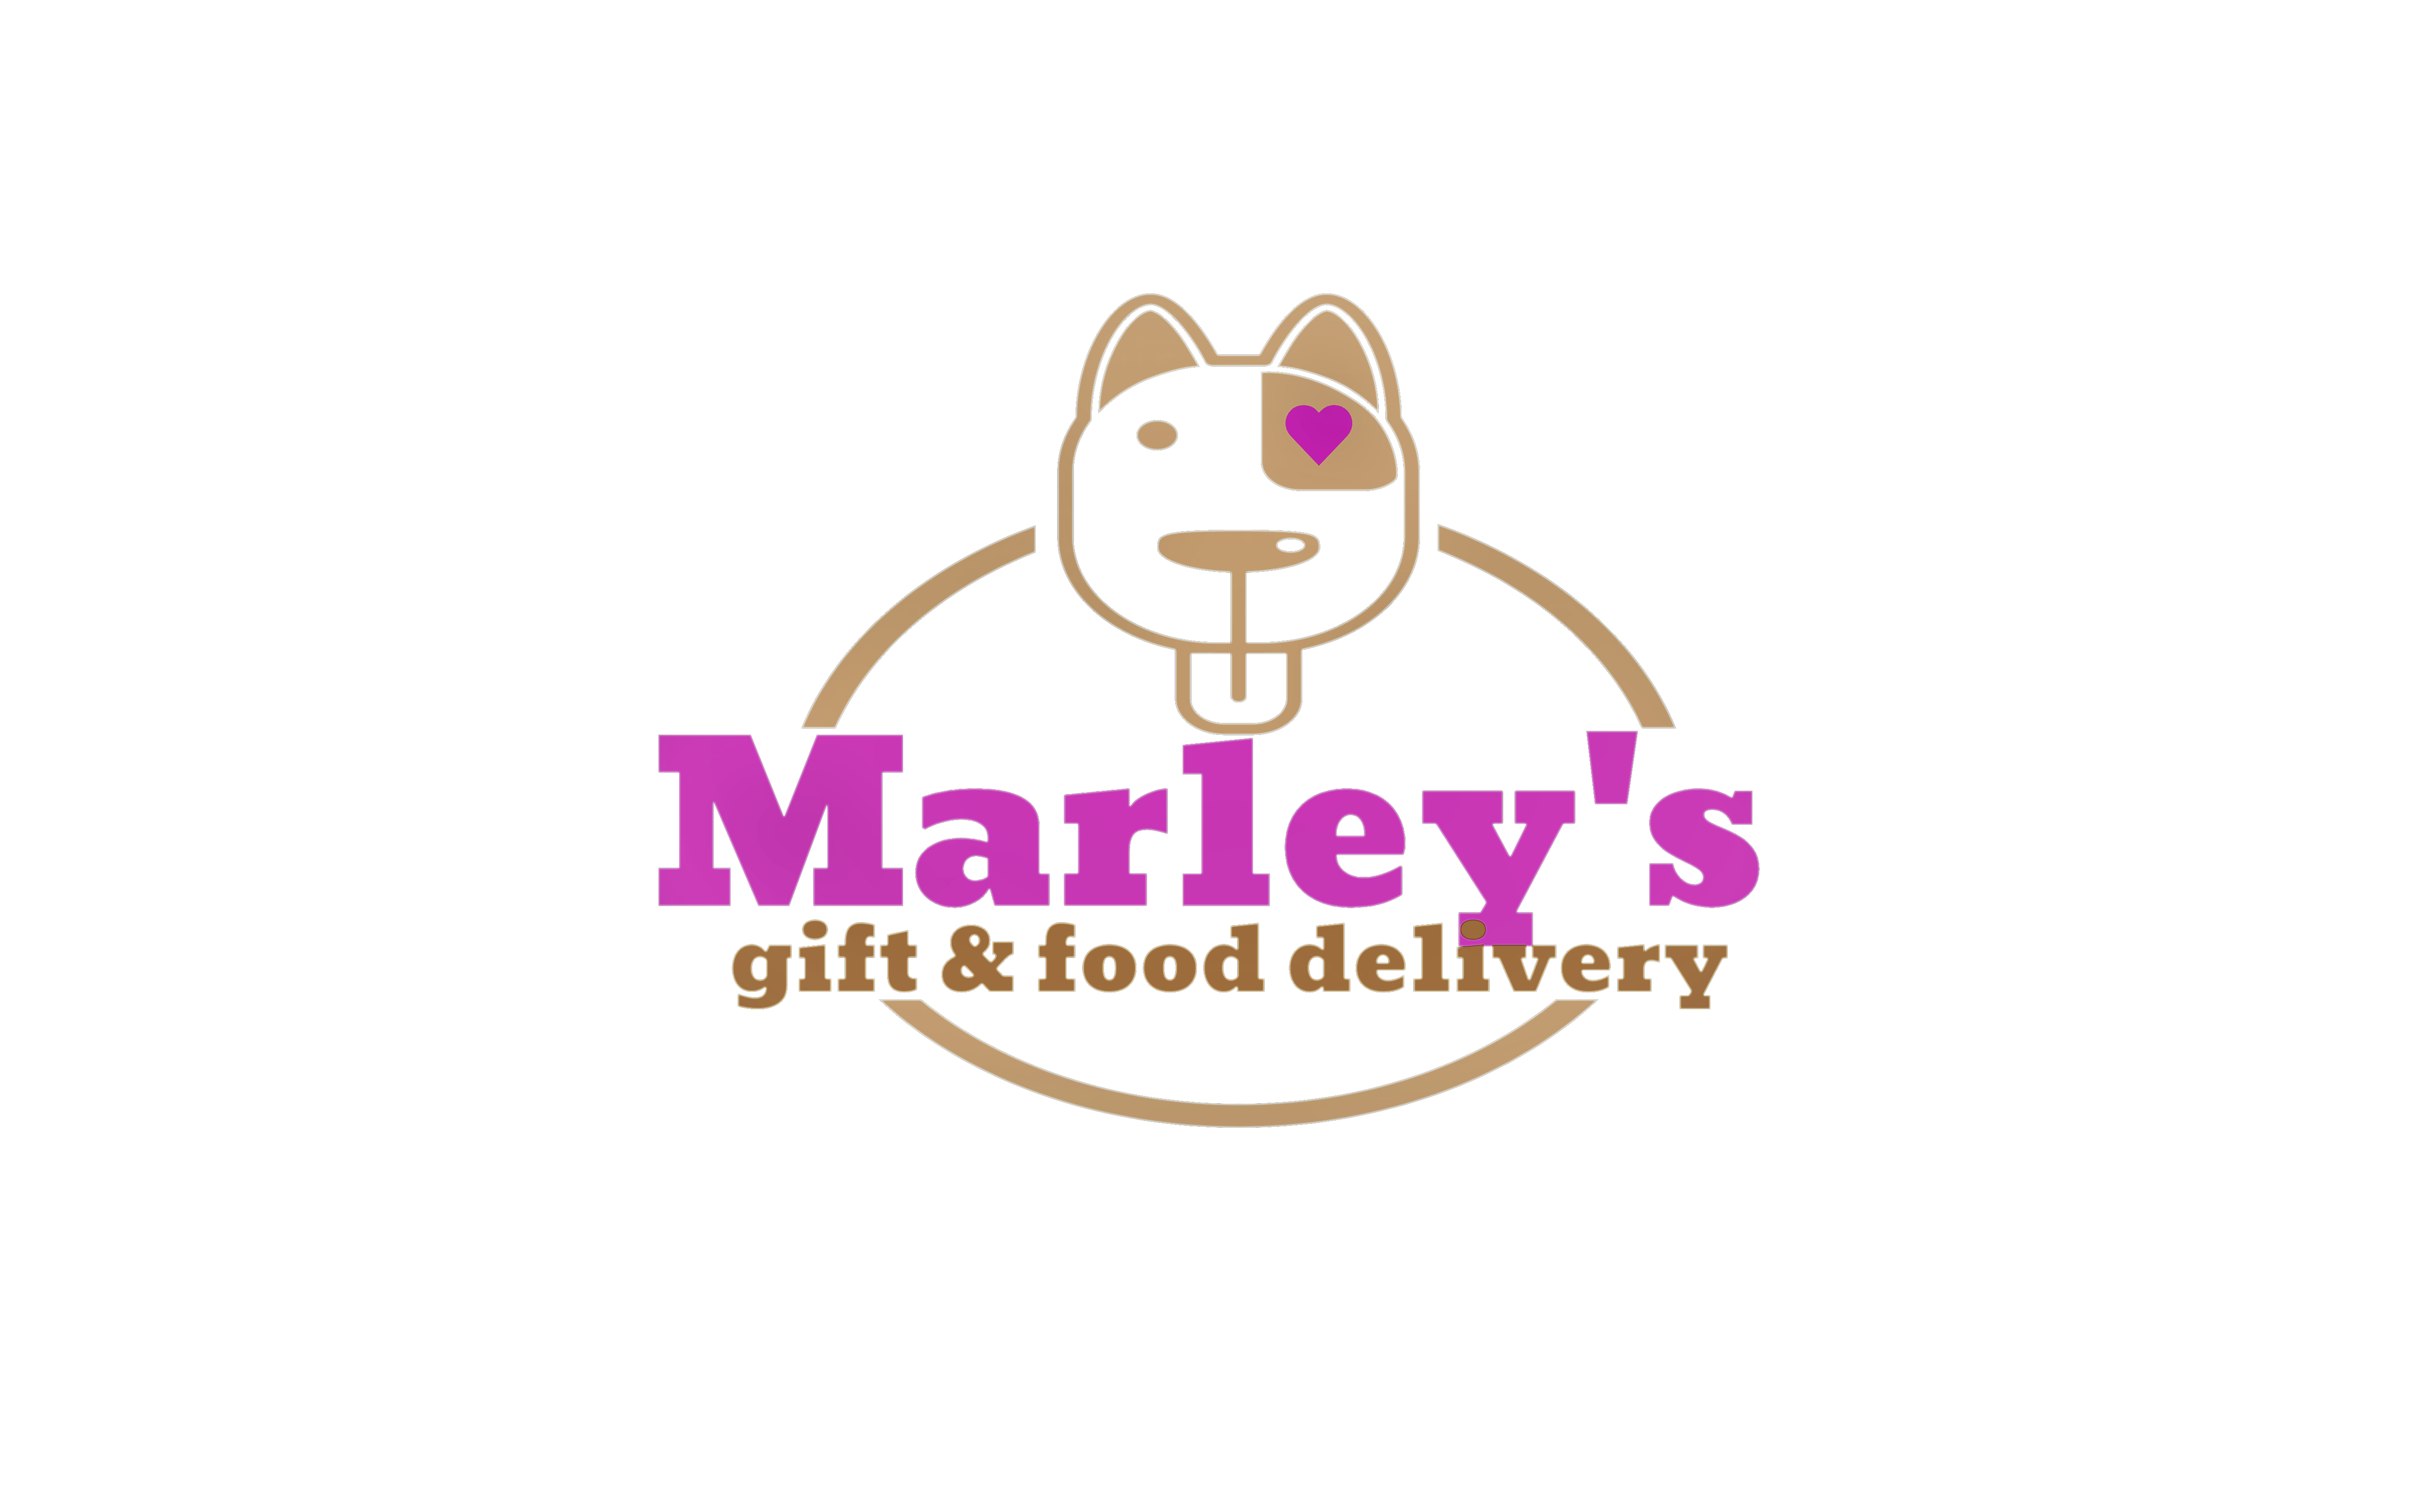 Marley's gift & food delivery